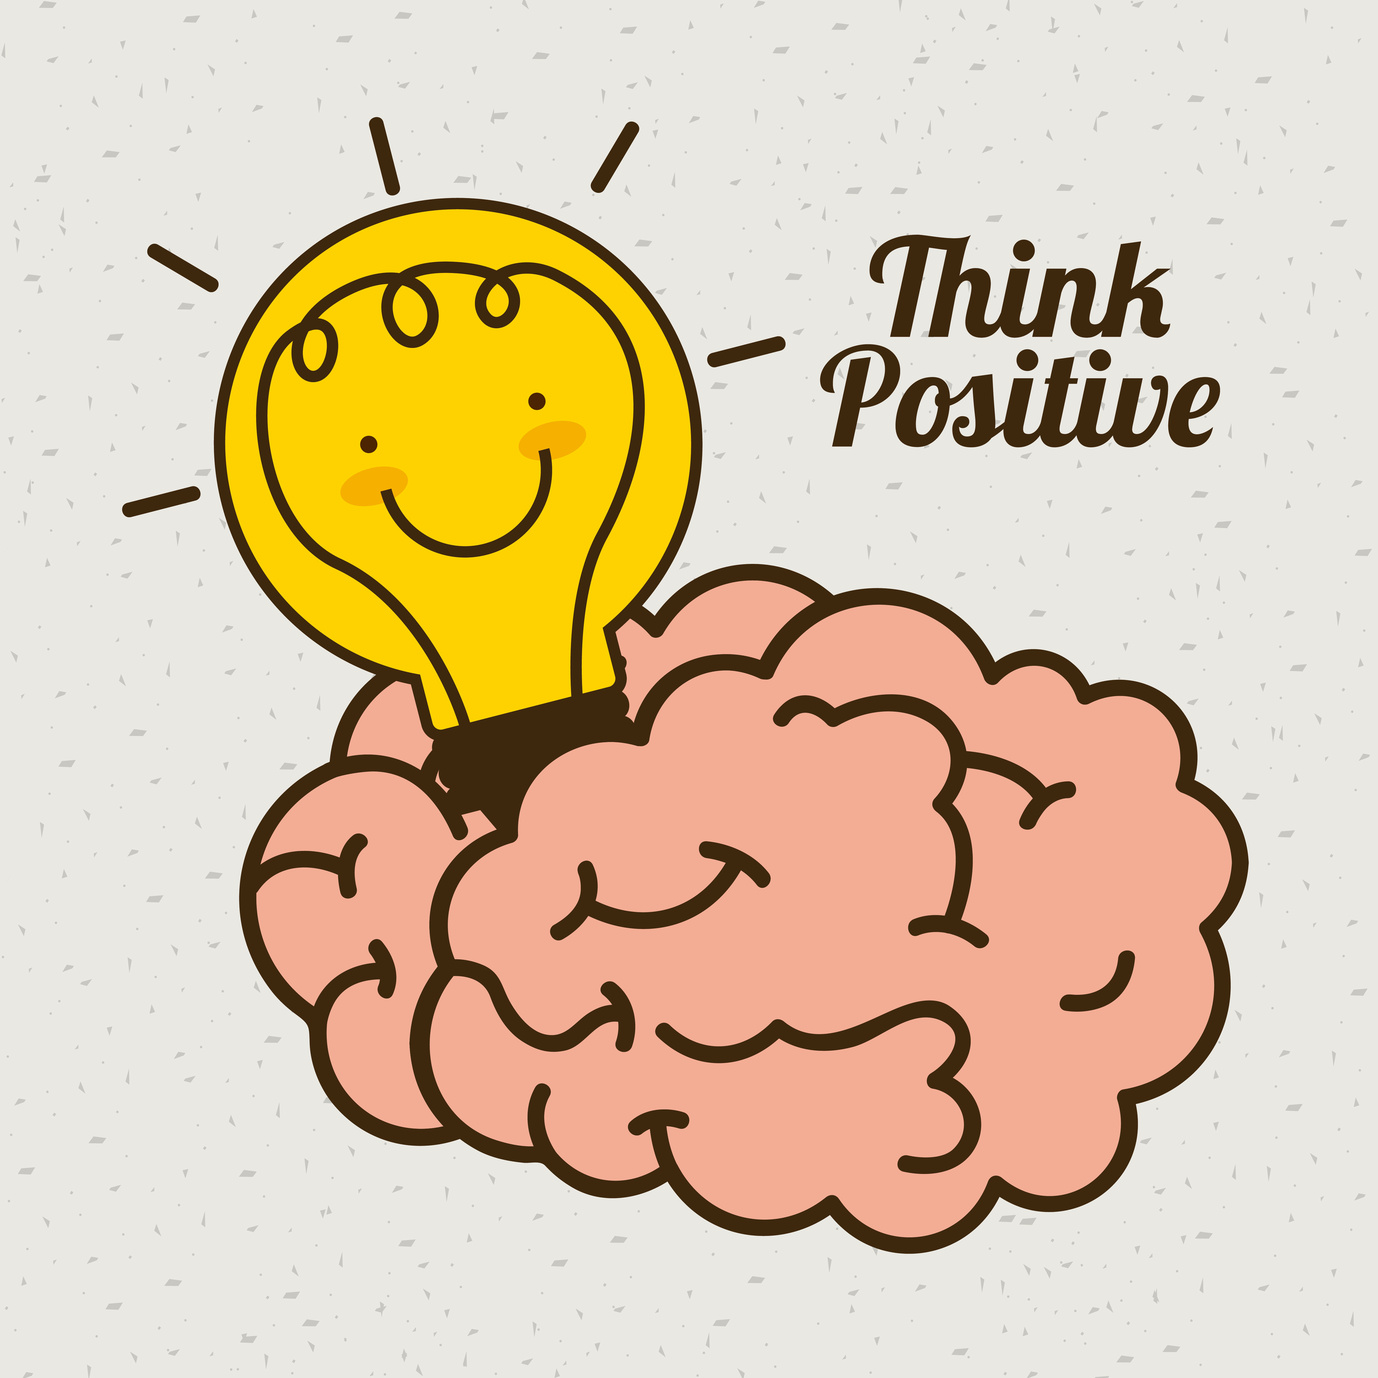 Self-talk; Maximise Your Thoughts